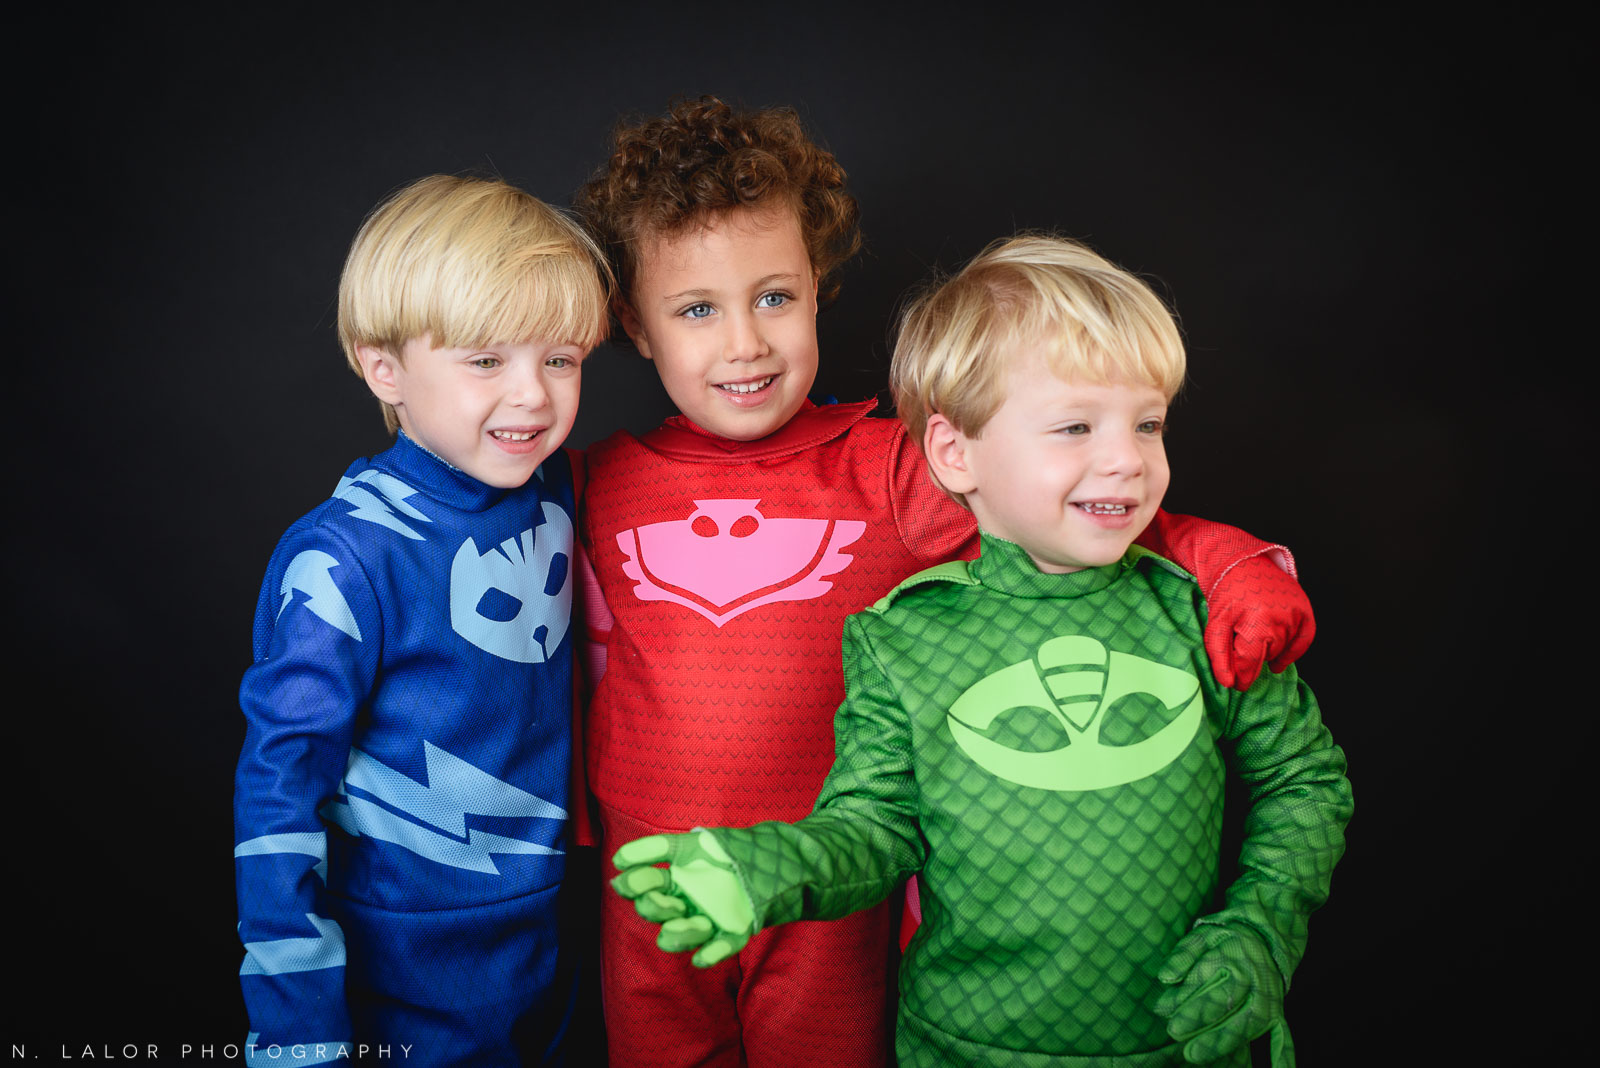 PJ Masks. Kids Halloween costume portrait by N. Lalor Photography in Greenwich, Connecticut.